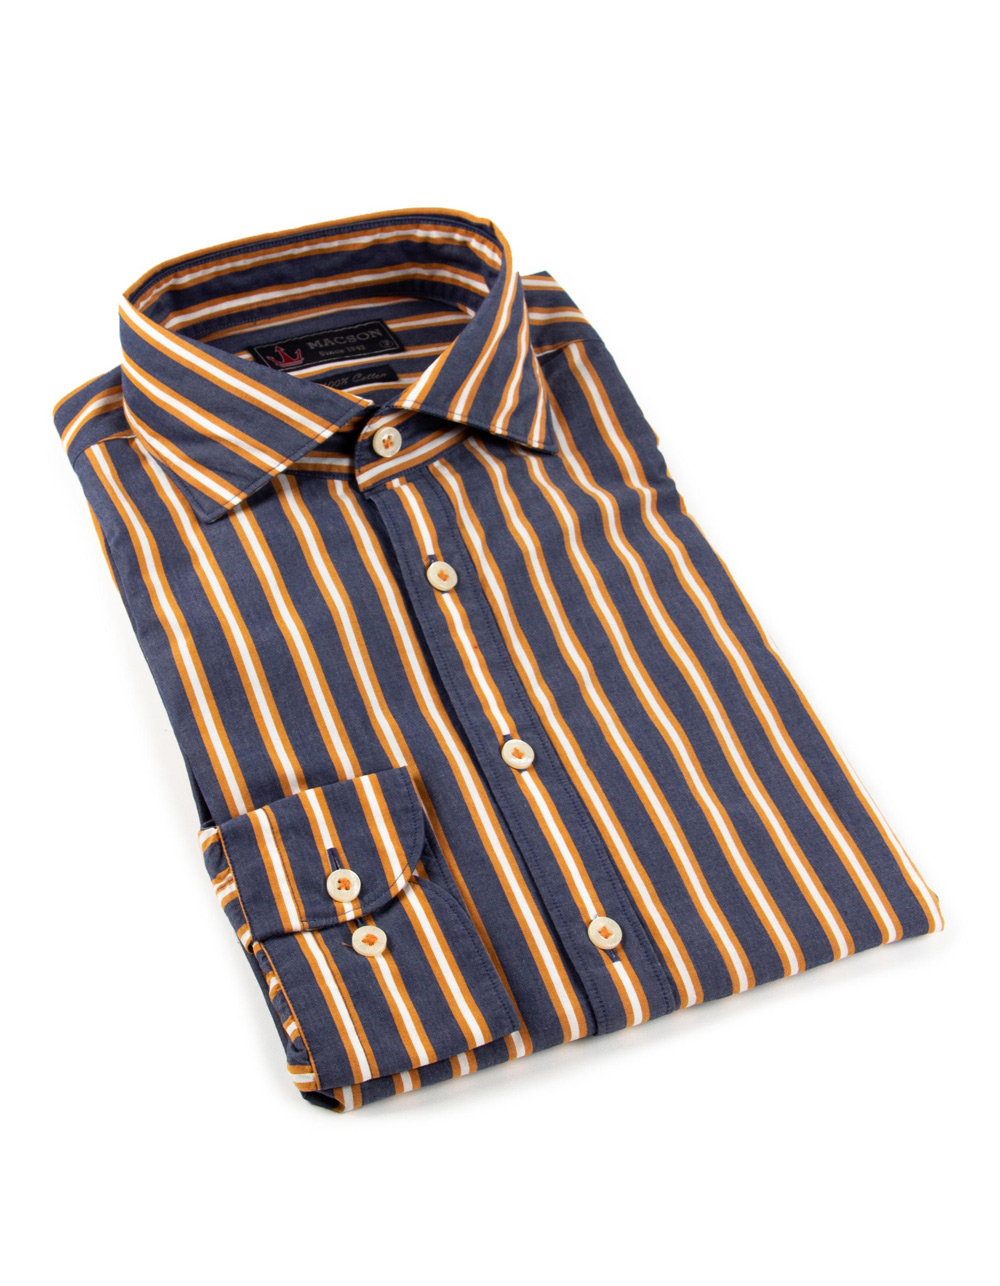 Blue and orange striped shirt